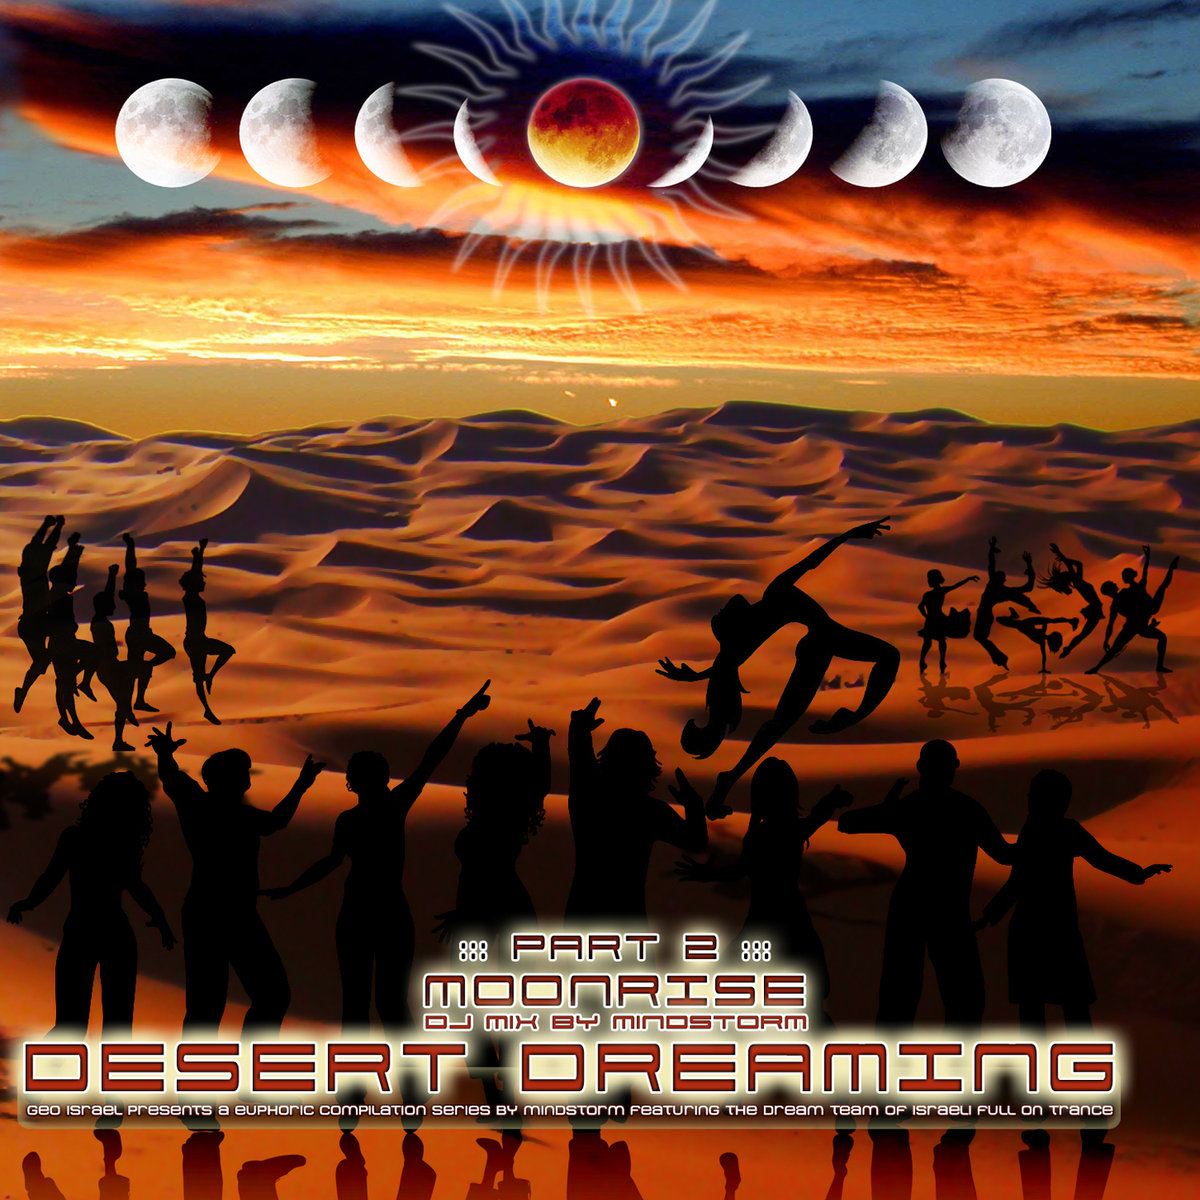 Mechanix - Digital Shmok @ 'Various Artists - Desert Dreaming Part 2: Moonrise (DJ Mix by Mindstorm)' album (electronic, goa)